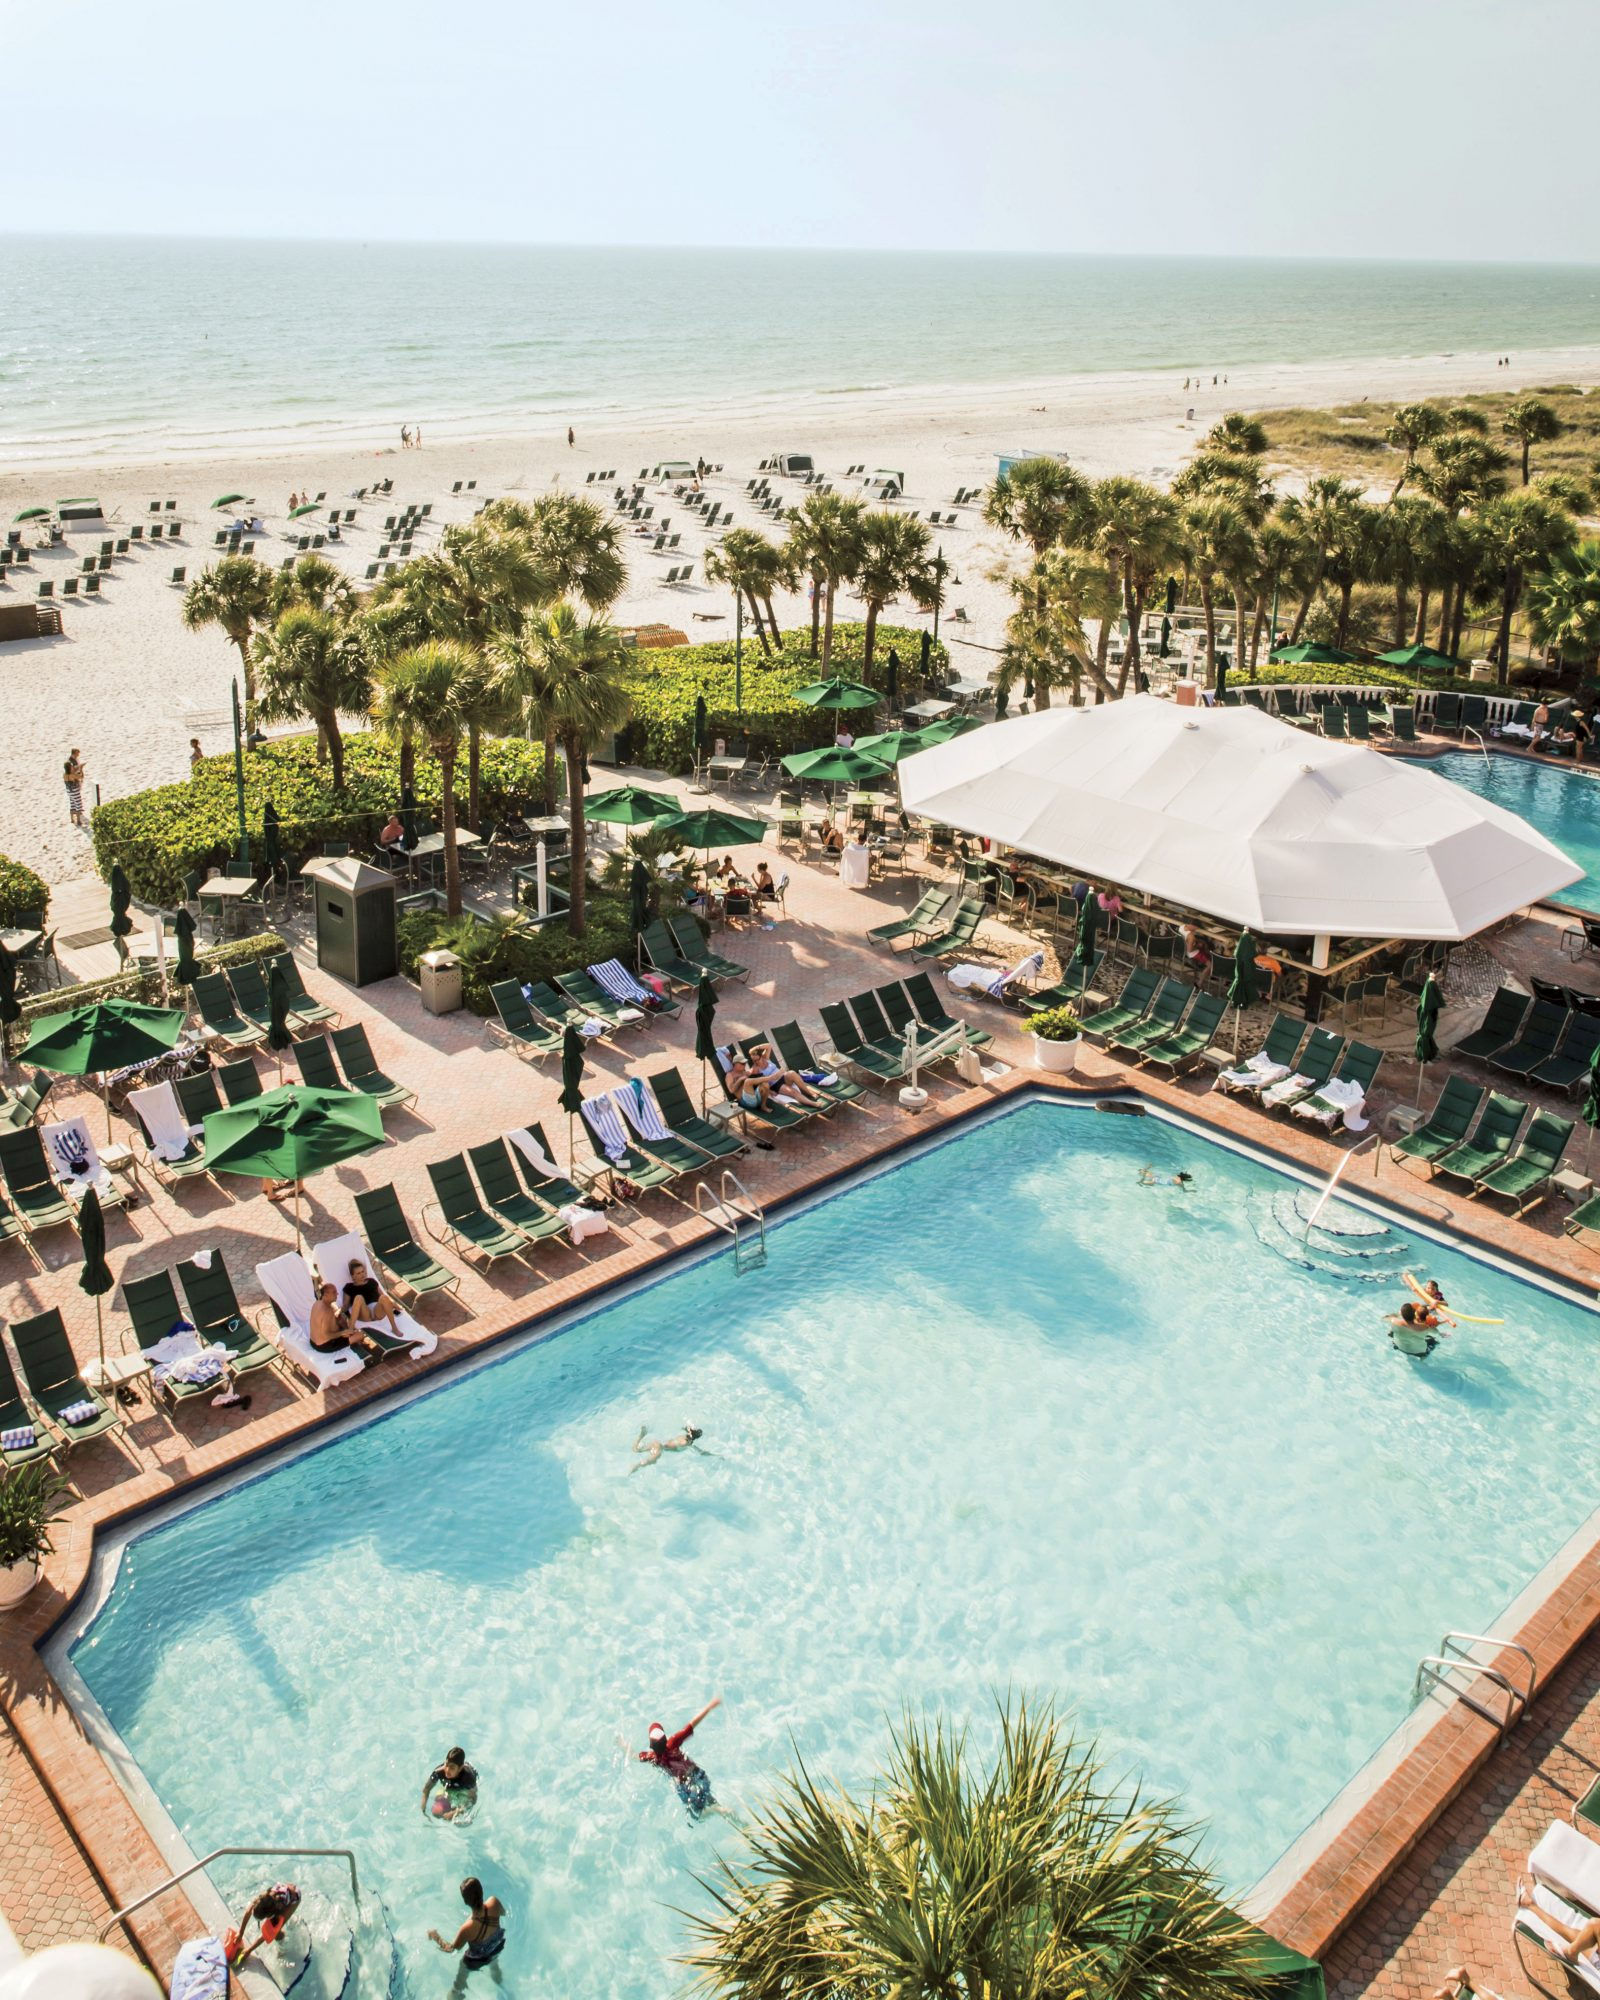 The Don Cesar Hotel Pool in St. Petersburg, FL